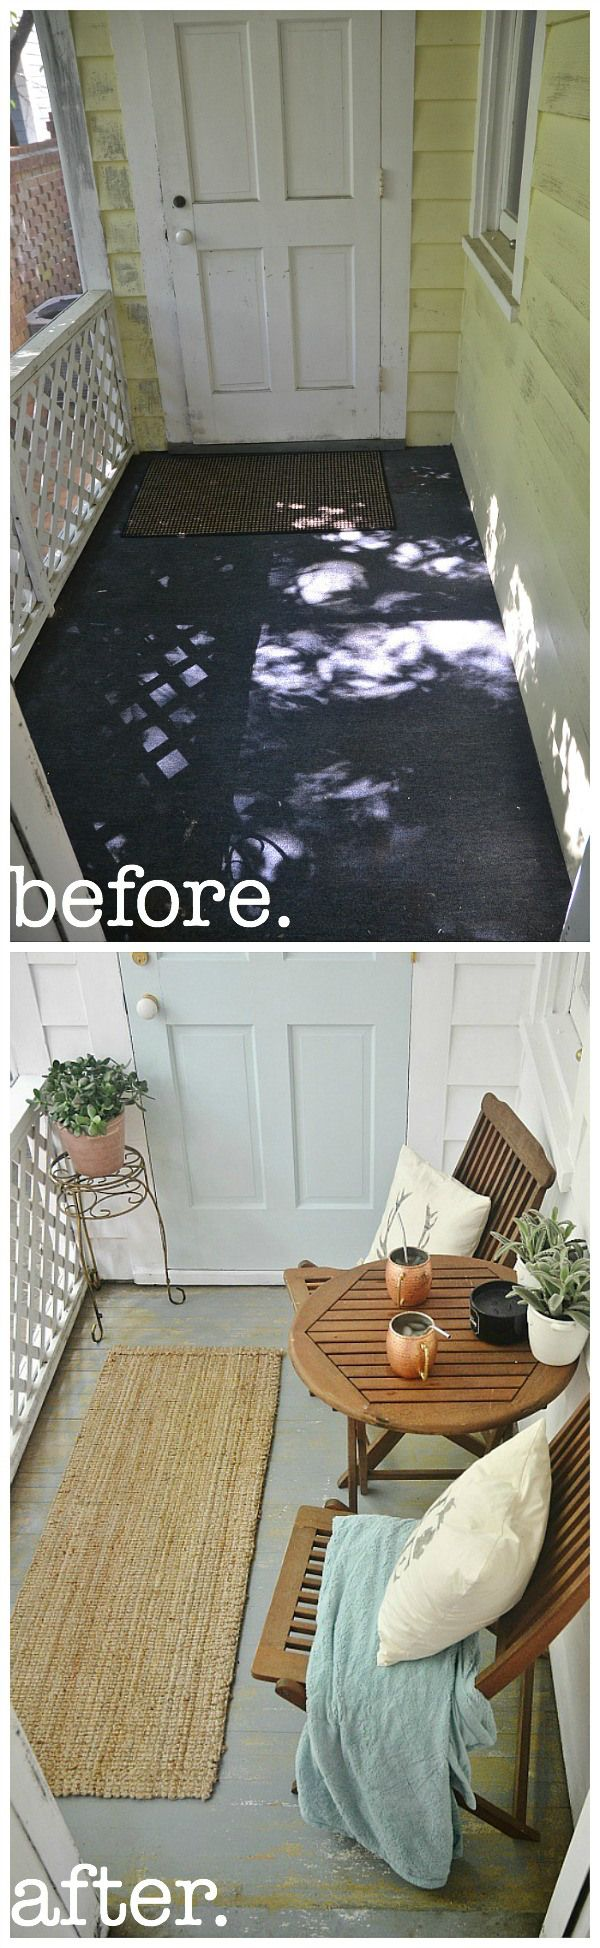 Patio decorating on a budget - Best 25 Small Patio Decorating Ideas On Pinterest Apartment Patios Apartment Patio Gardens And Apartment Patio Decorating